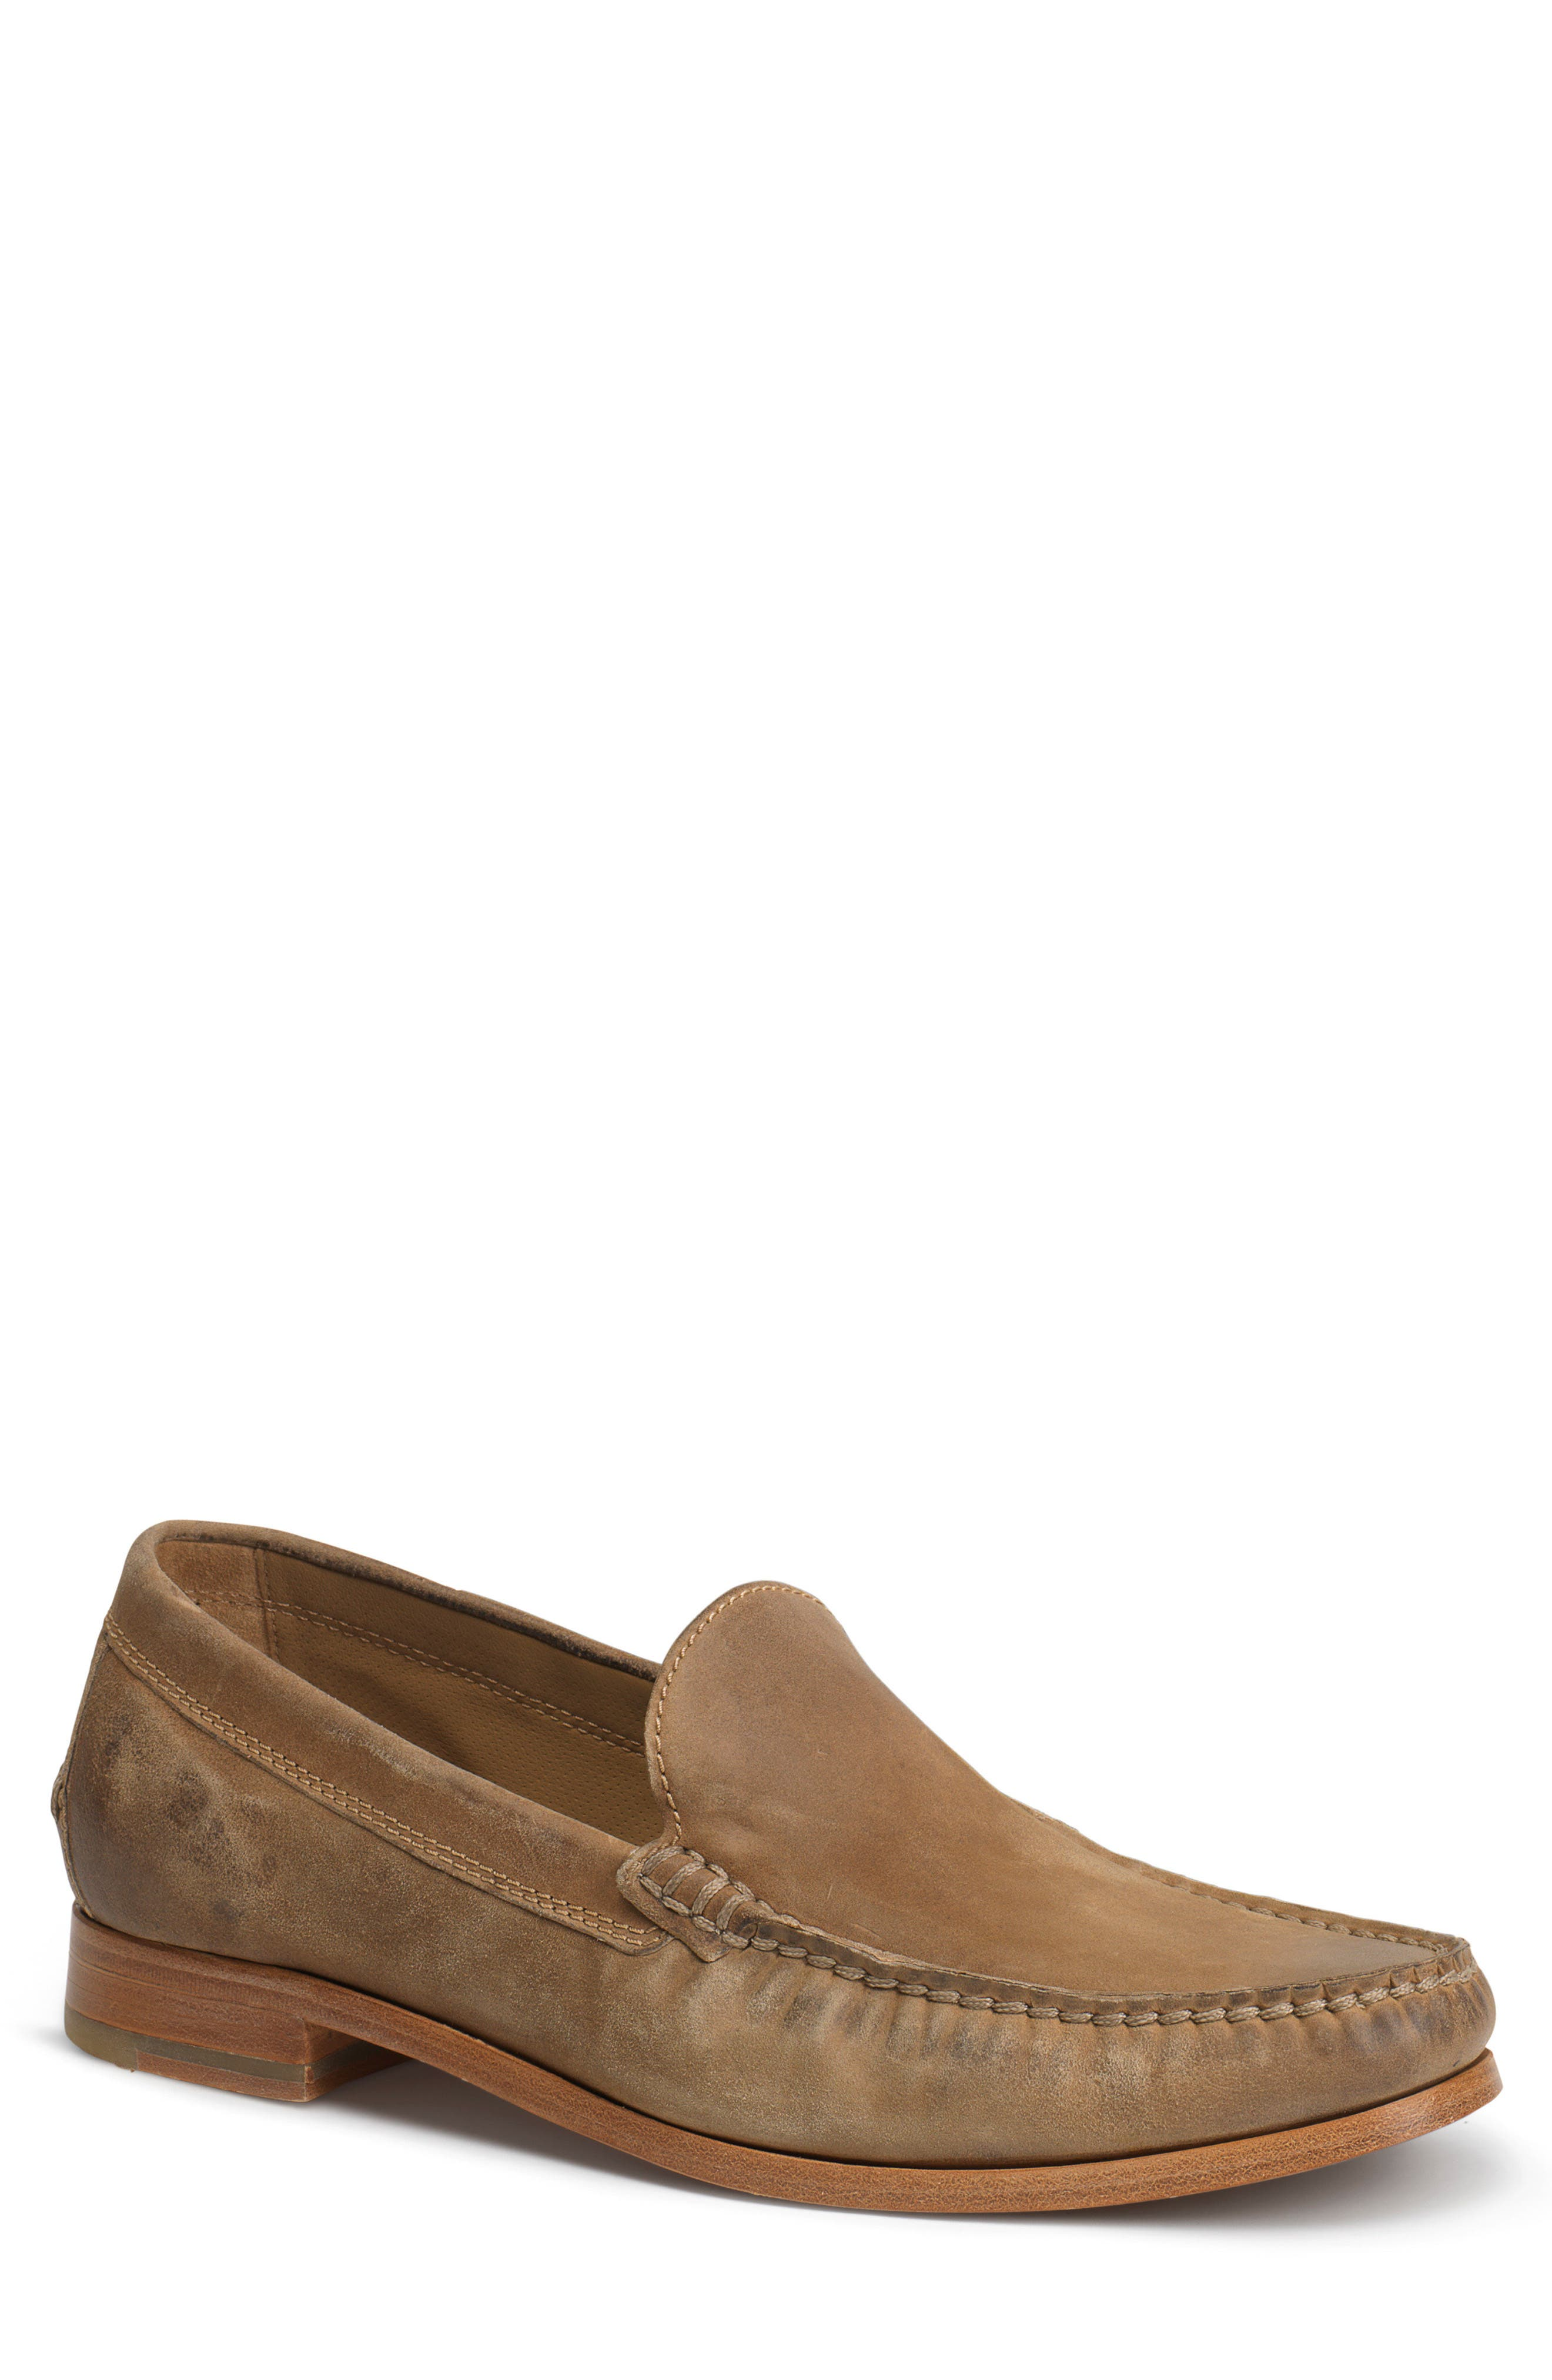 Seymour Loafer,                             Main thumbnail 1, color,